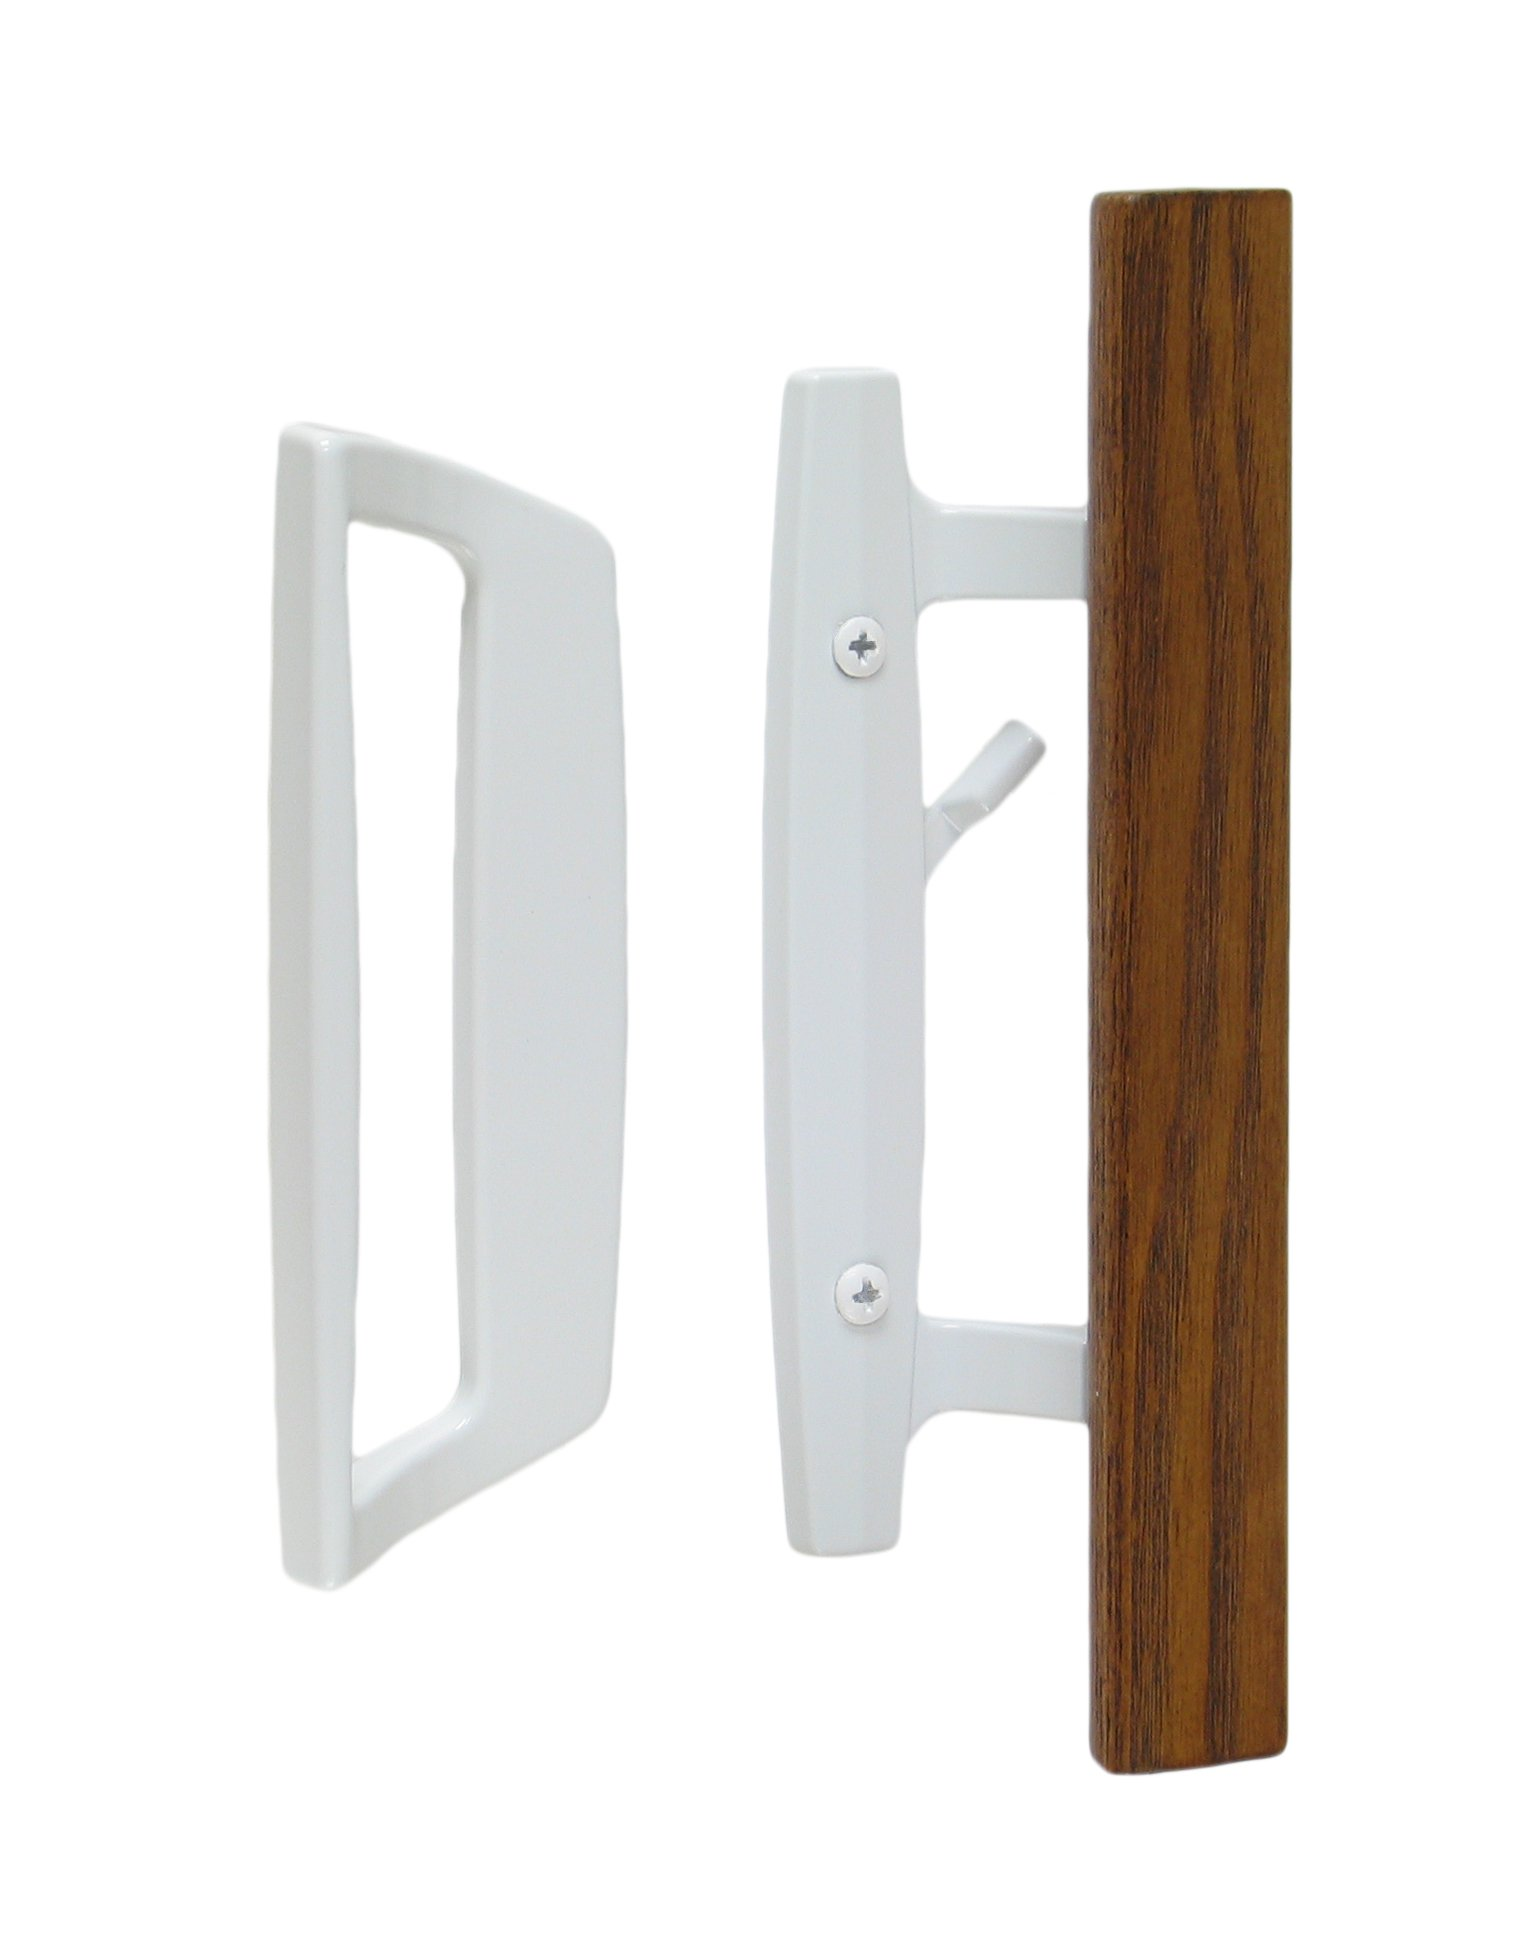 "Bali Nai Sliding Glass Door Handle and Mortise Lock Set with Oak Wood Pull in White Finish, Standard 3-15/16"" CTC Screw Holes, 1-1/2'' Door Thickness"